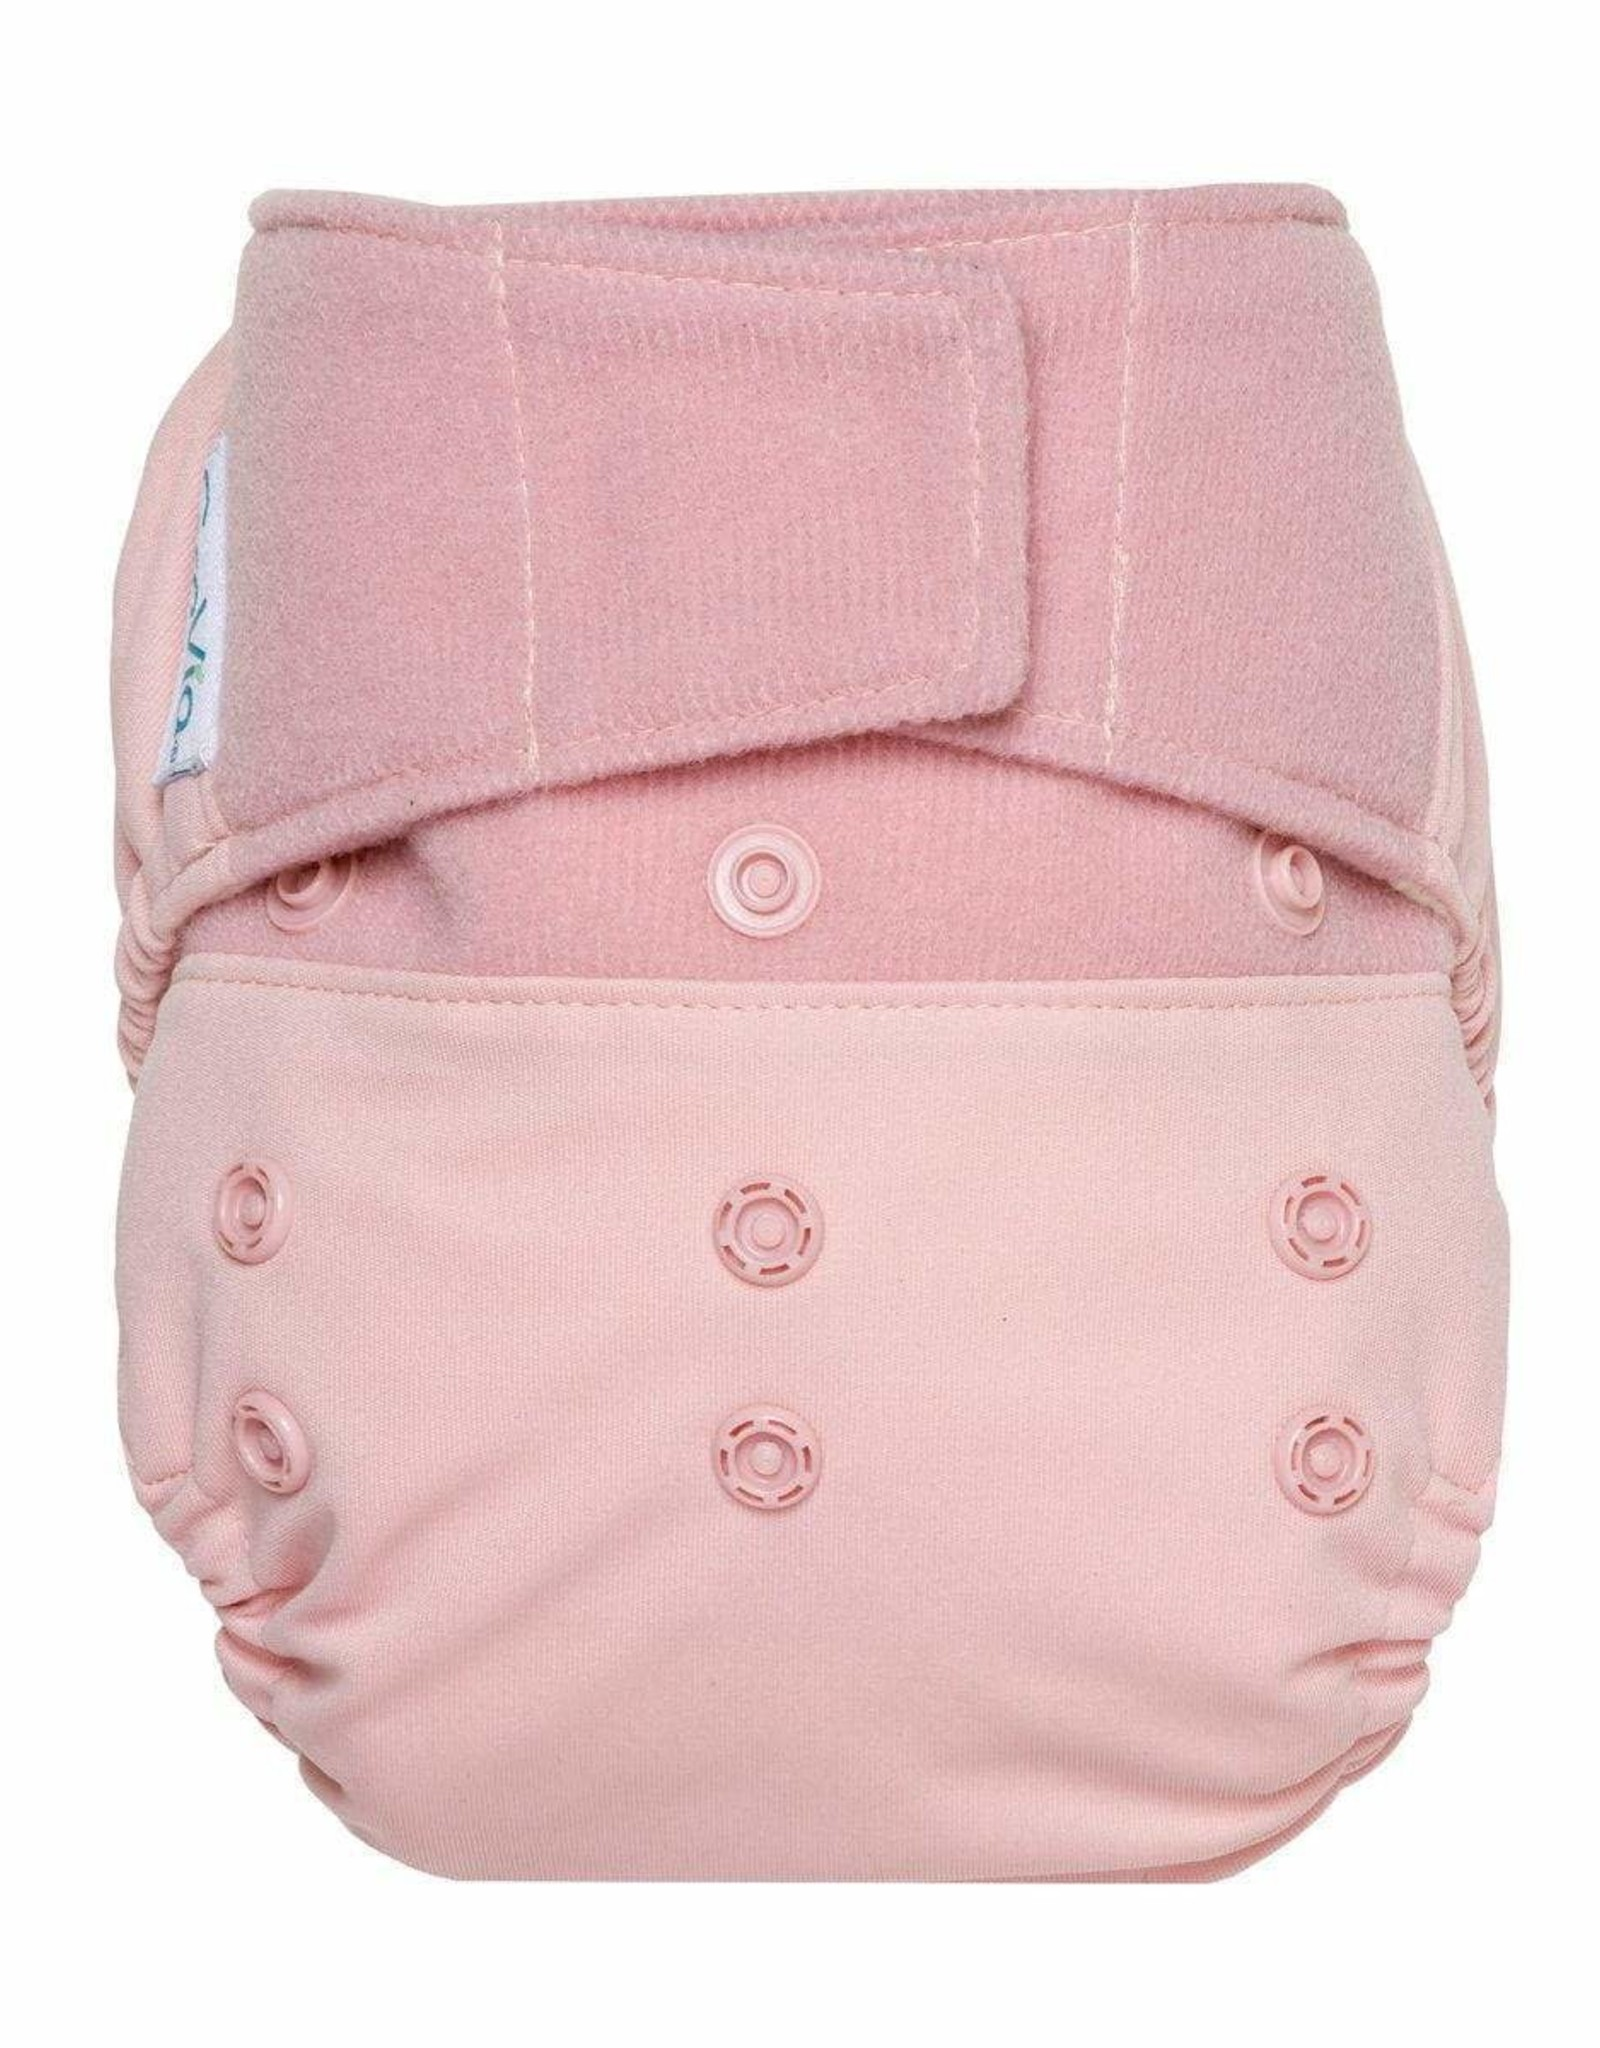 Hook & Loop Hybrid Cloth Diapers- Crane